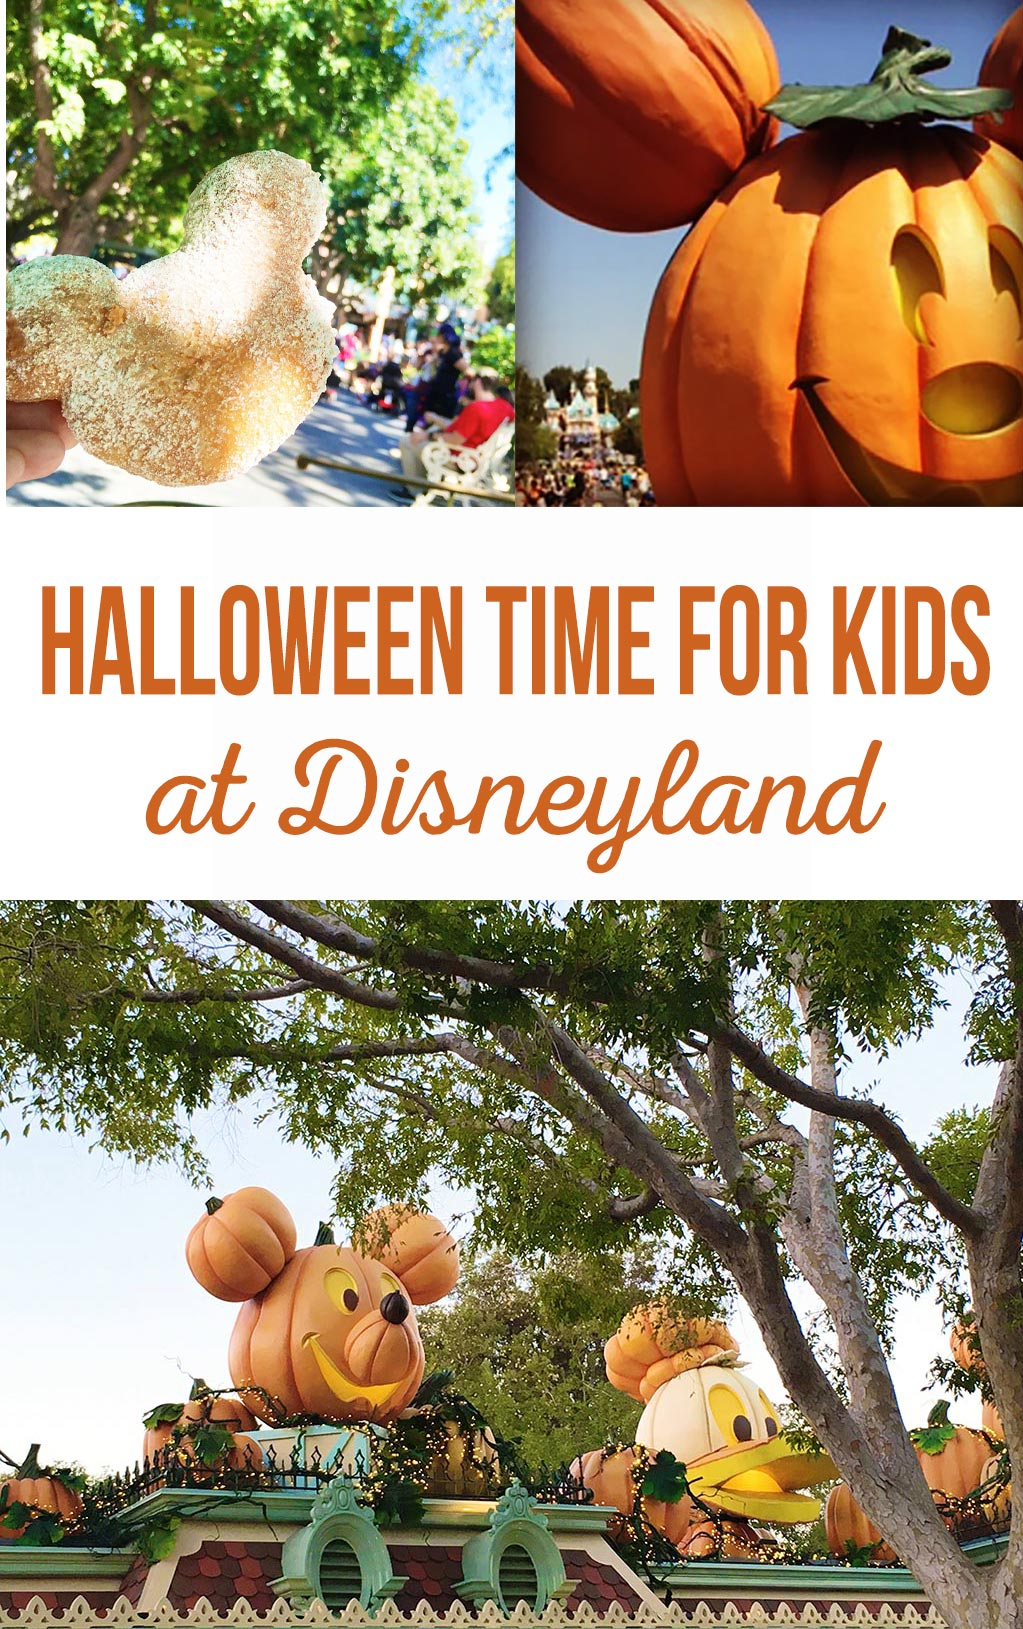 Halloween for Kids at Disneyland | Find out all of the fun at Disneyland Halloween Time for kids. It's the perfect way to celebrate and there's something for everyone.